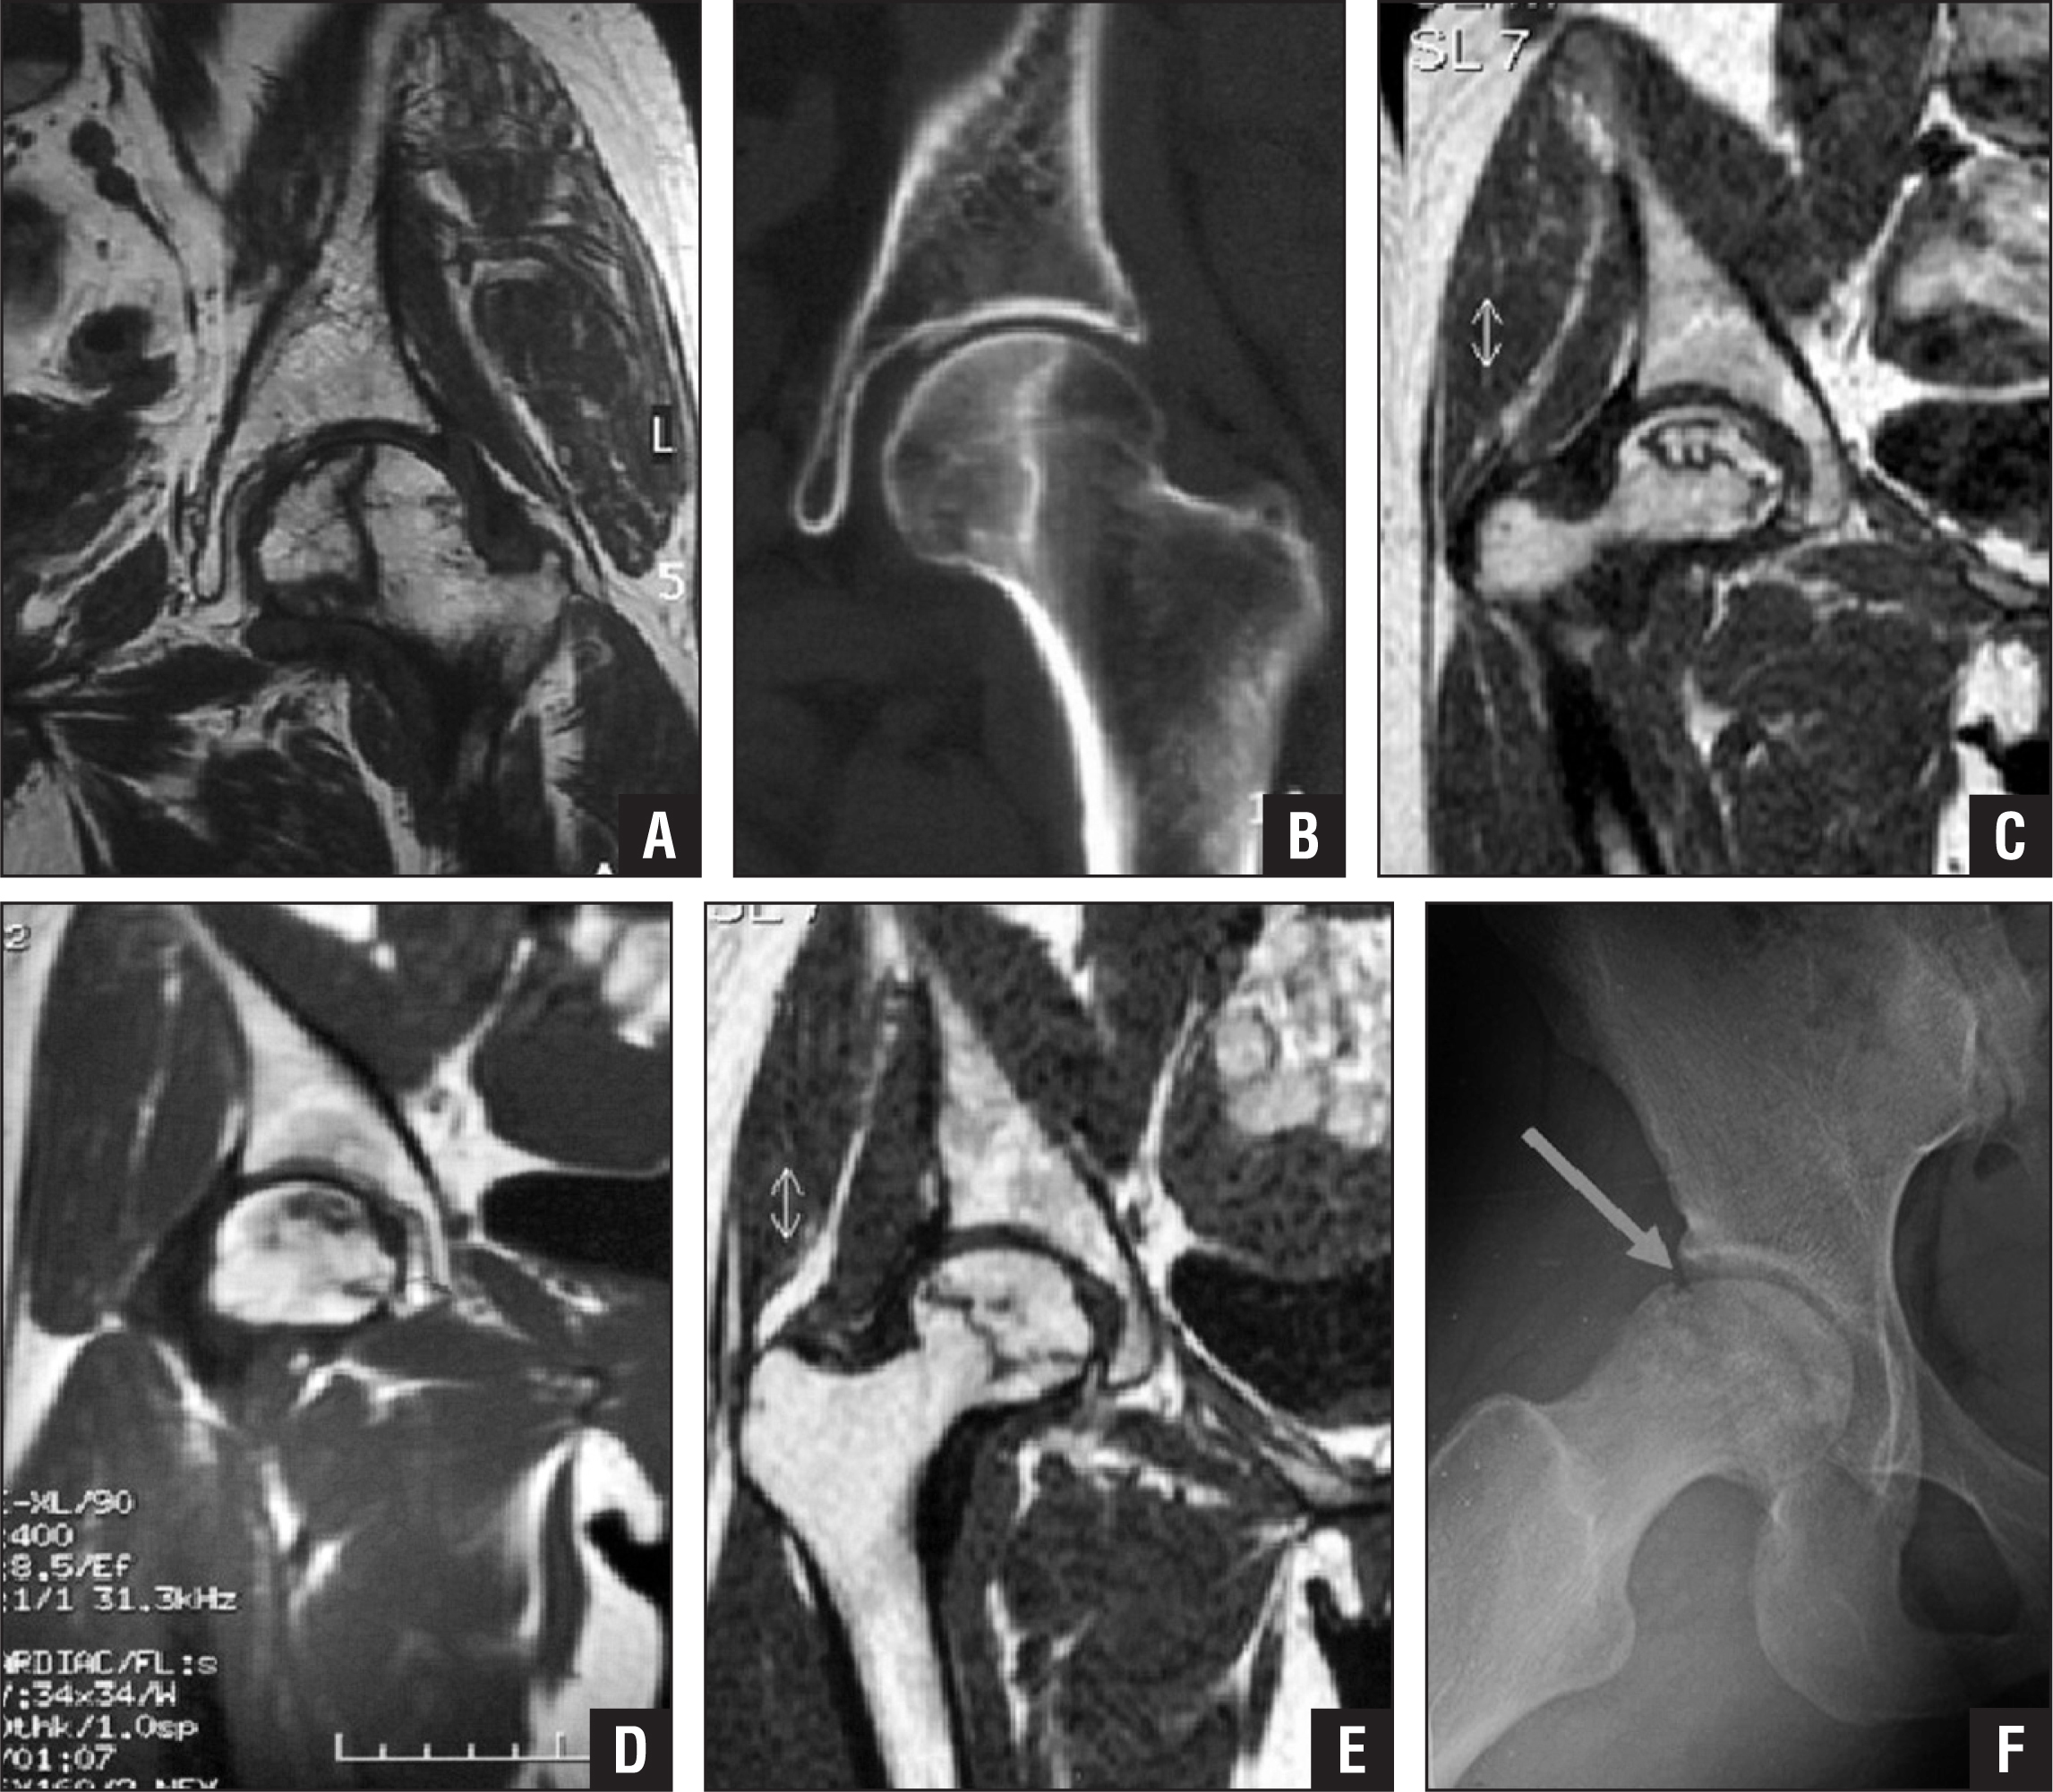 Magnetic resonance image of type I osteonecrosis of the femoral head (ONFH) showing a preserved lateral pillar (A). Computed tomography scan showing no collapse of the femoral head 7 years later (B). Magnetic resonance image of type II ONFH showing partial preservation of the lateral cortical bone (C). Computed tomography scan showing no collapse of the femoral head 4 years later (D). Magnetic resonance image of type III ONFH showing the necrotic line passing through the cortical bone and bone marrow (E). Radiograph showing collapse of the femoral head 2 years later (F).